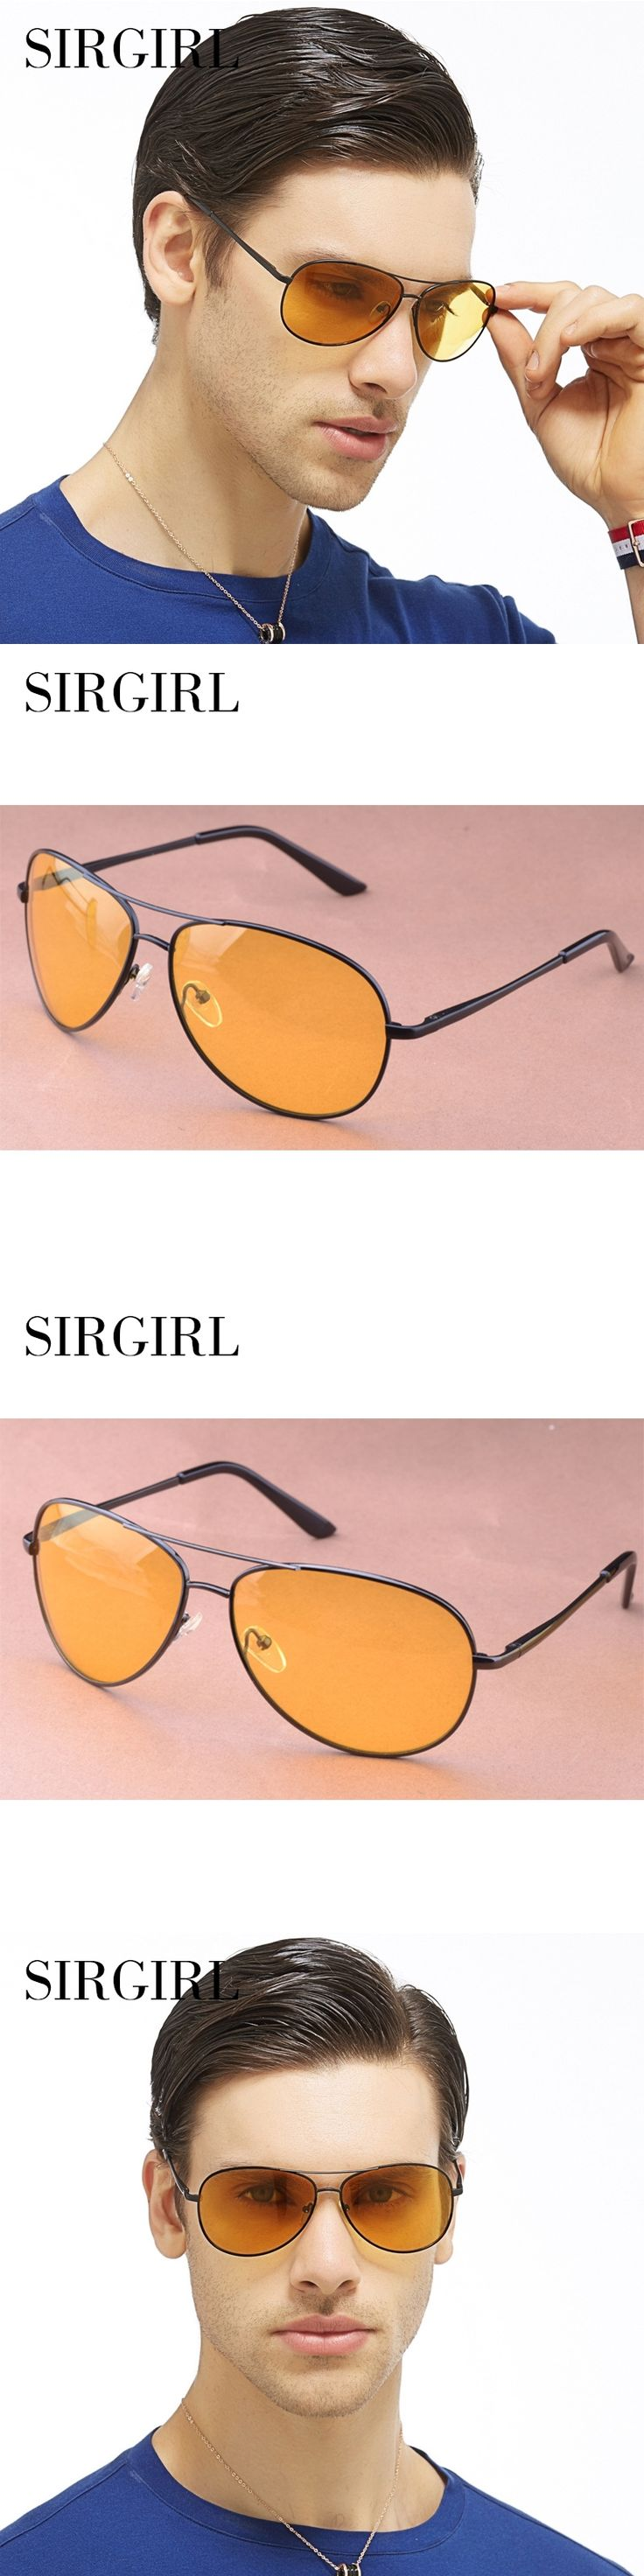 Sirgirl Day and Night Driving Multi-Function Polarized Pilot Sunglasses Men Gradient Lens Anti-Glare Night Vision Glasses